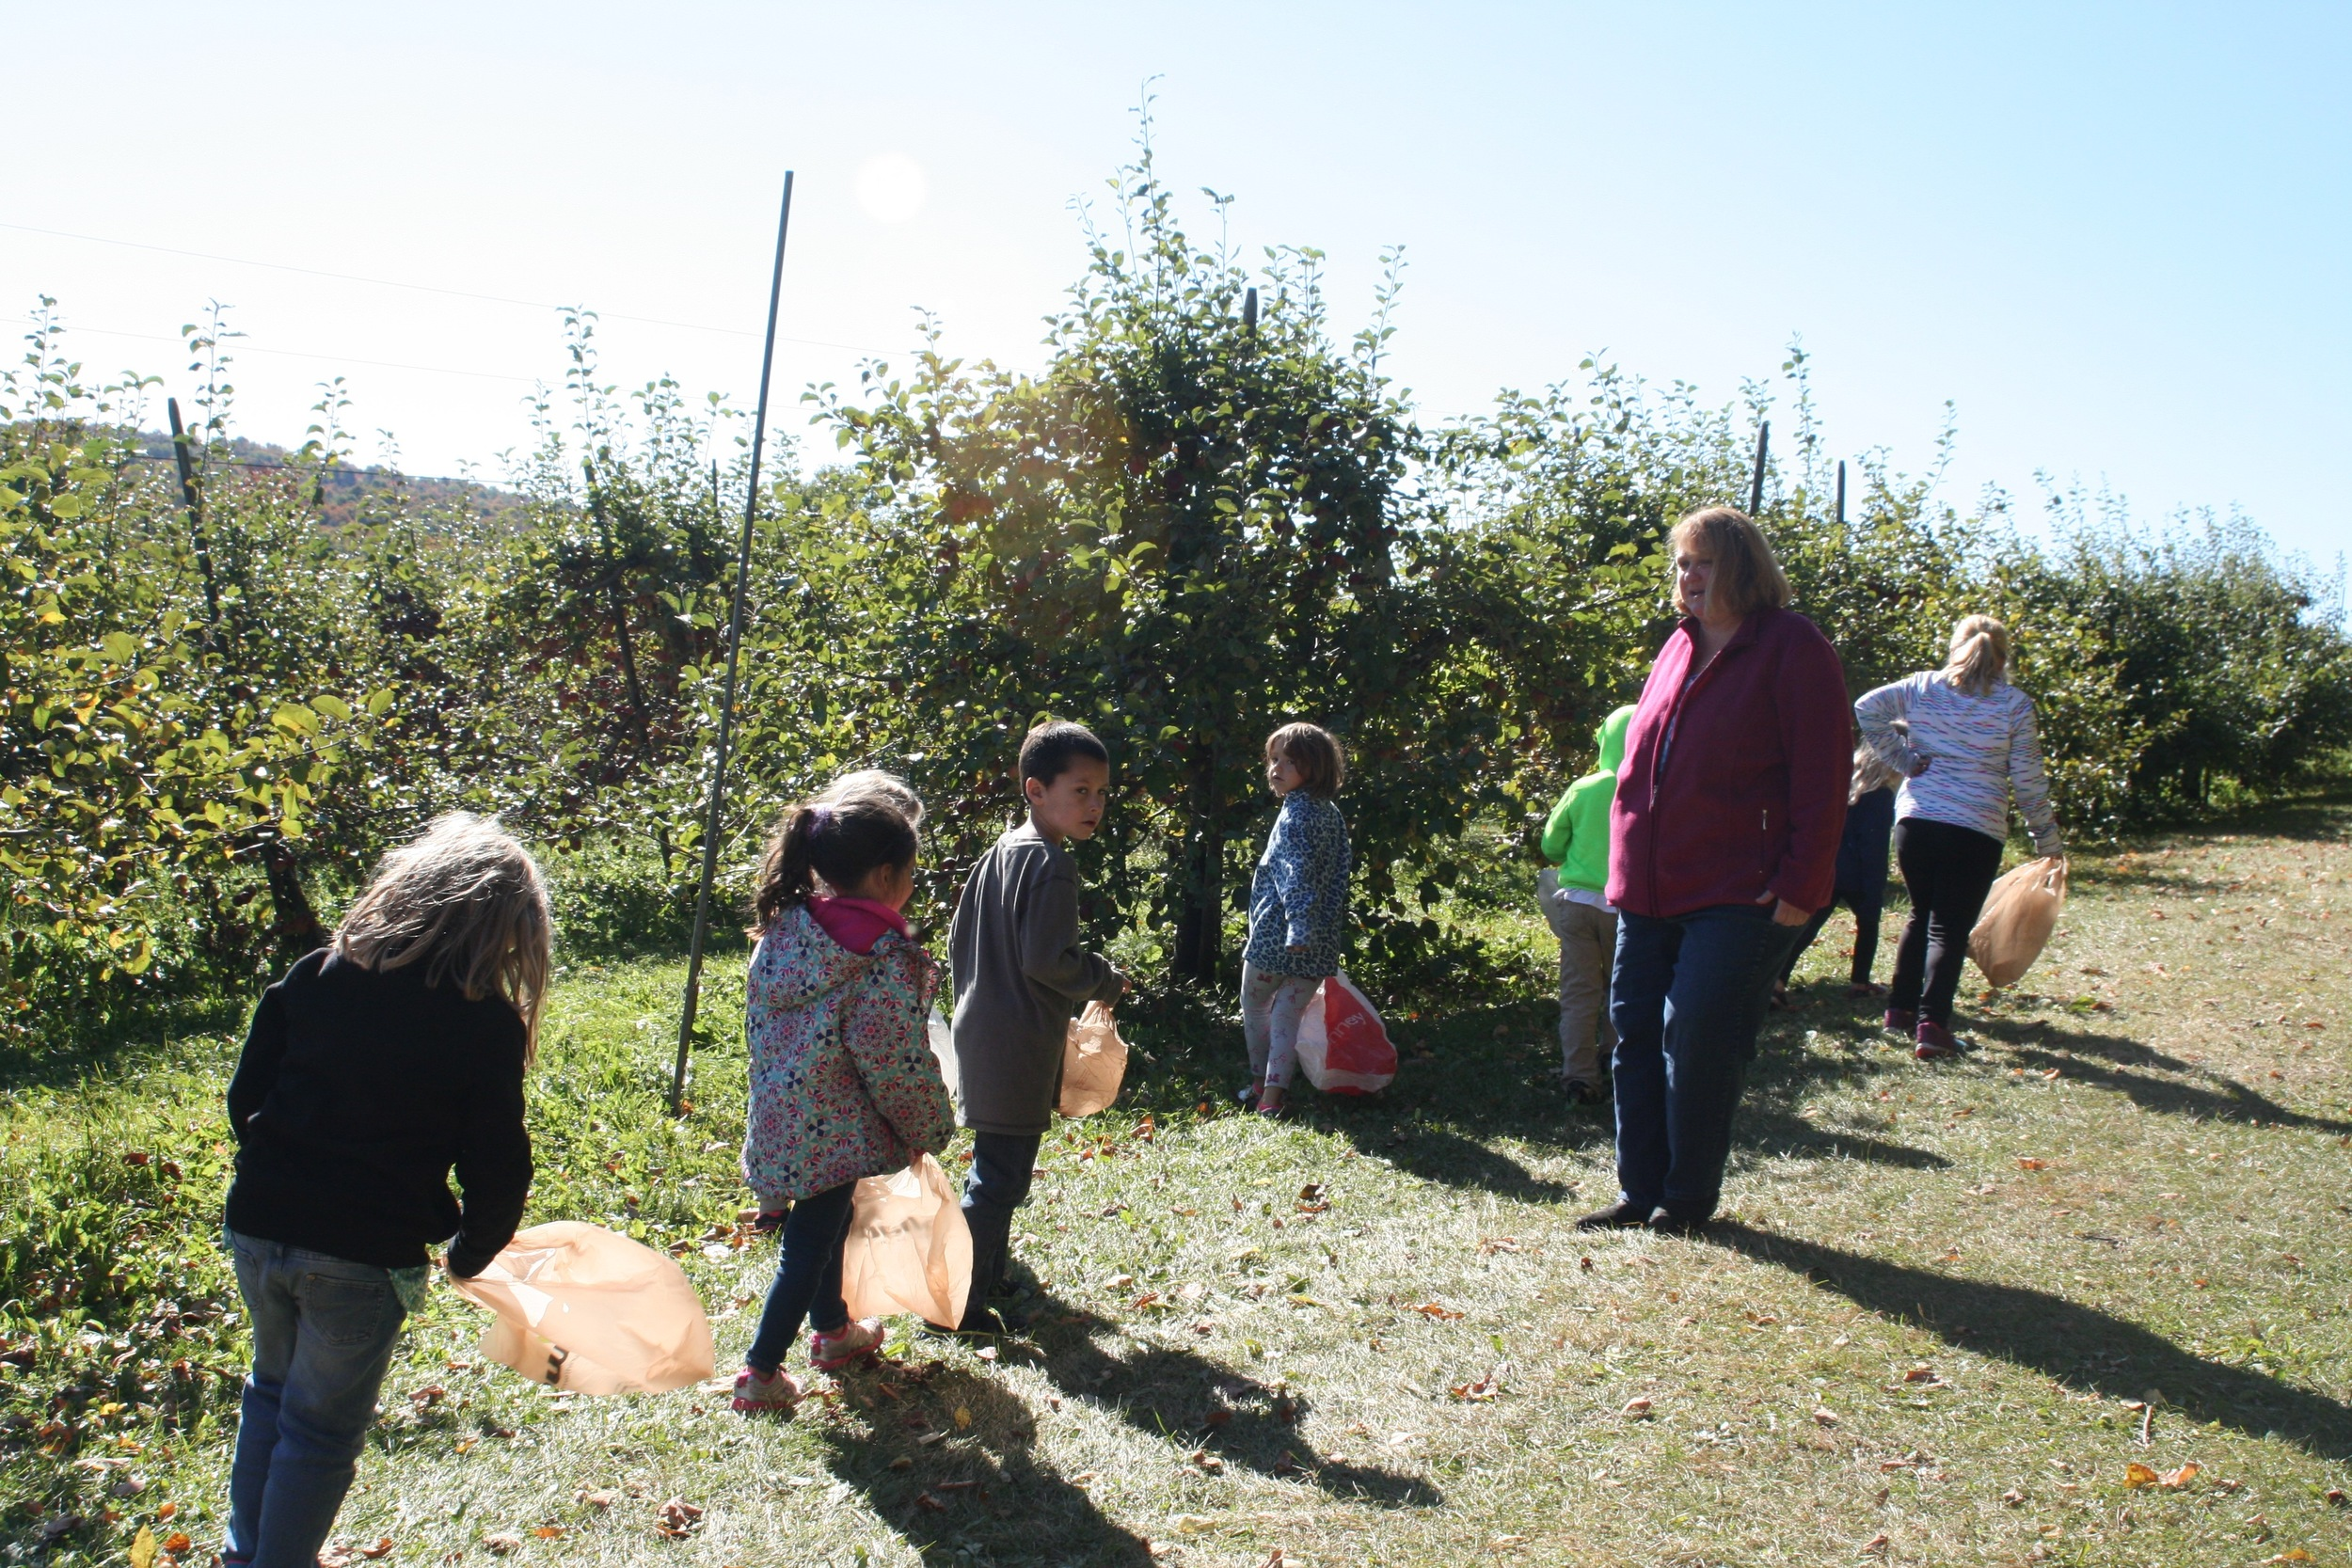 Vermont FEED & FARM TO SCHOOL NETWORK